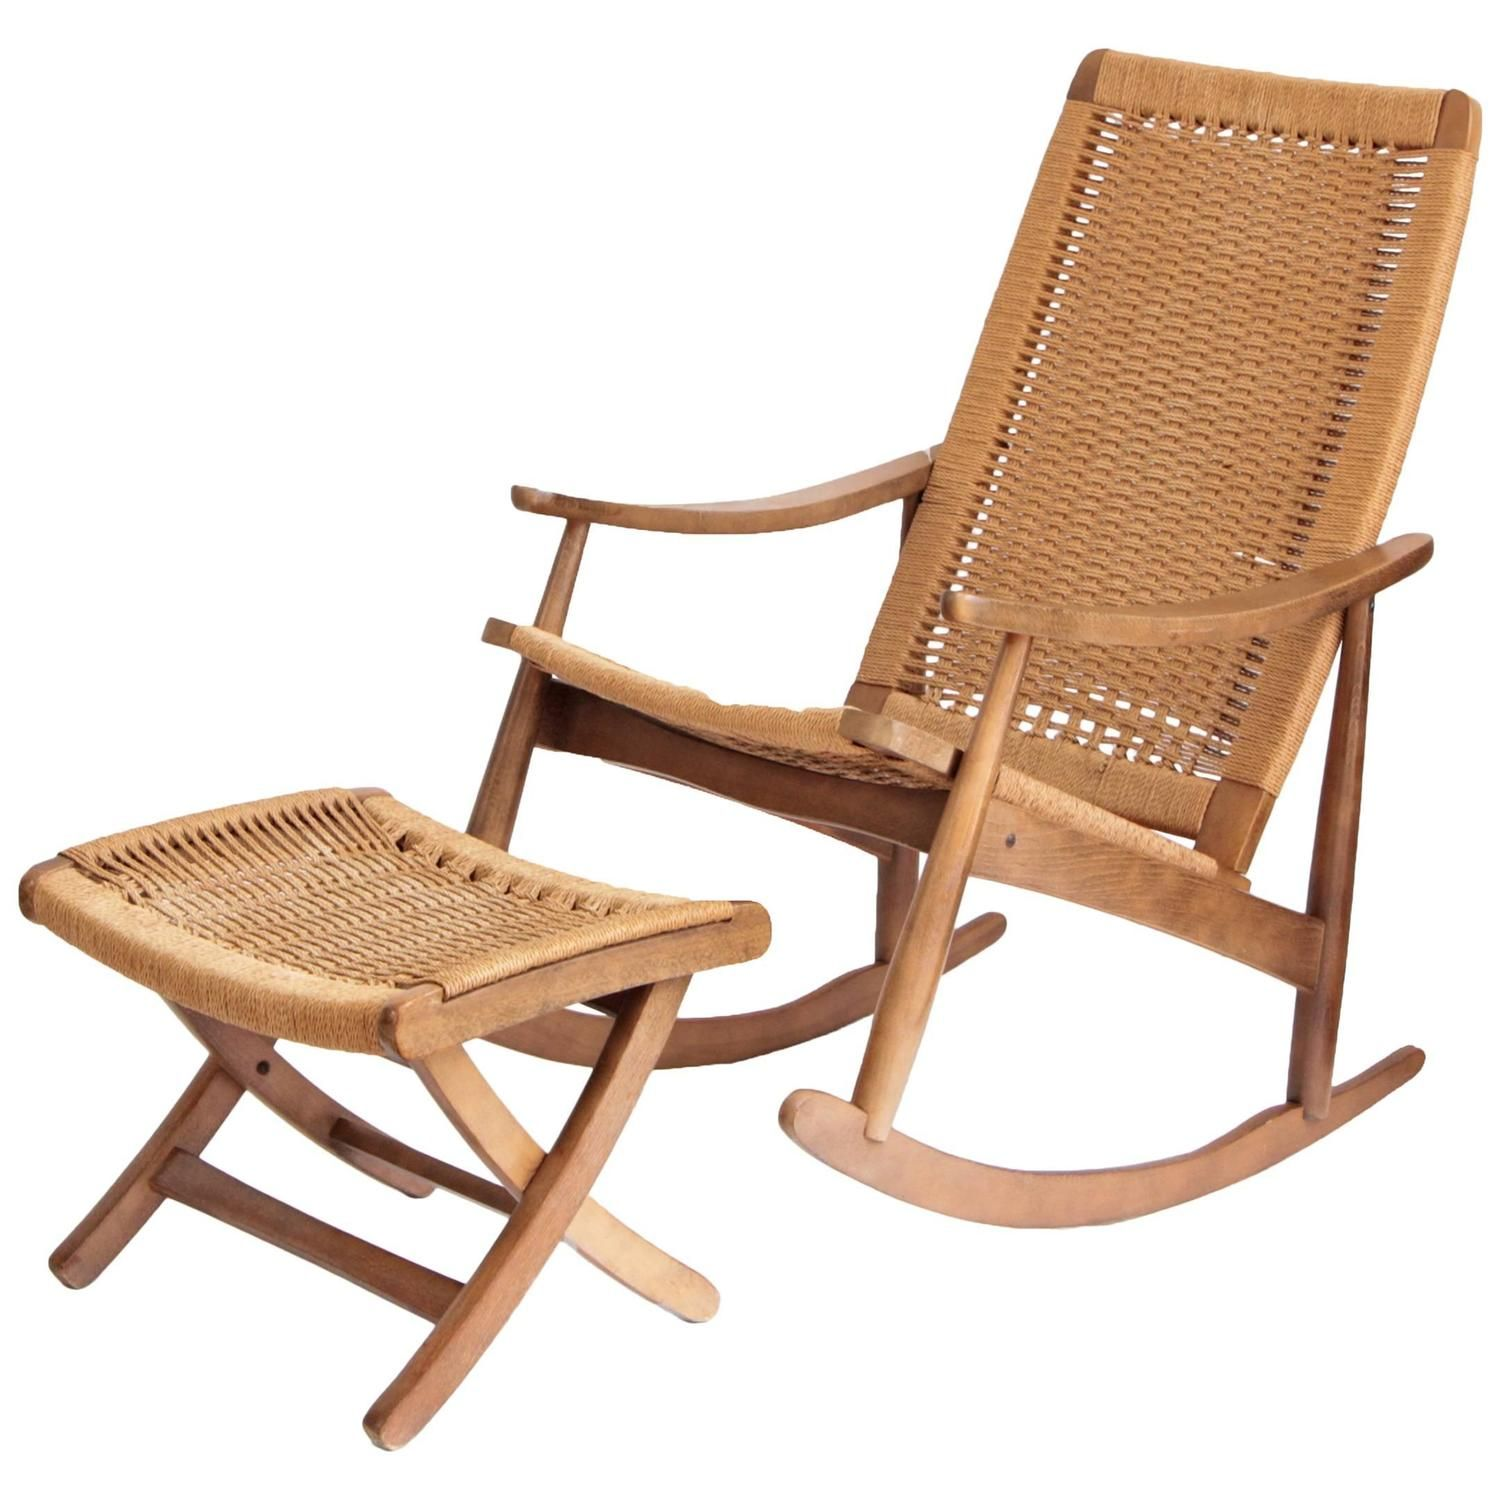 Woven Rope Mid Century Modern Rocking Chair and Ottoman